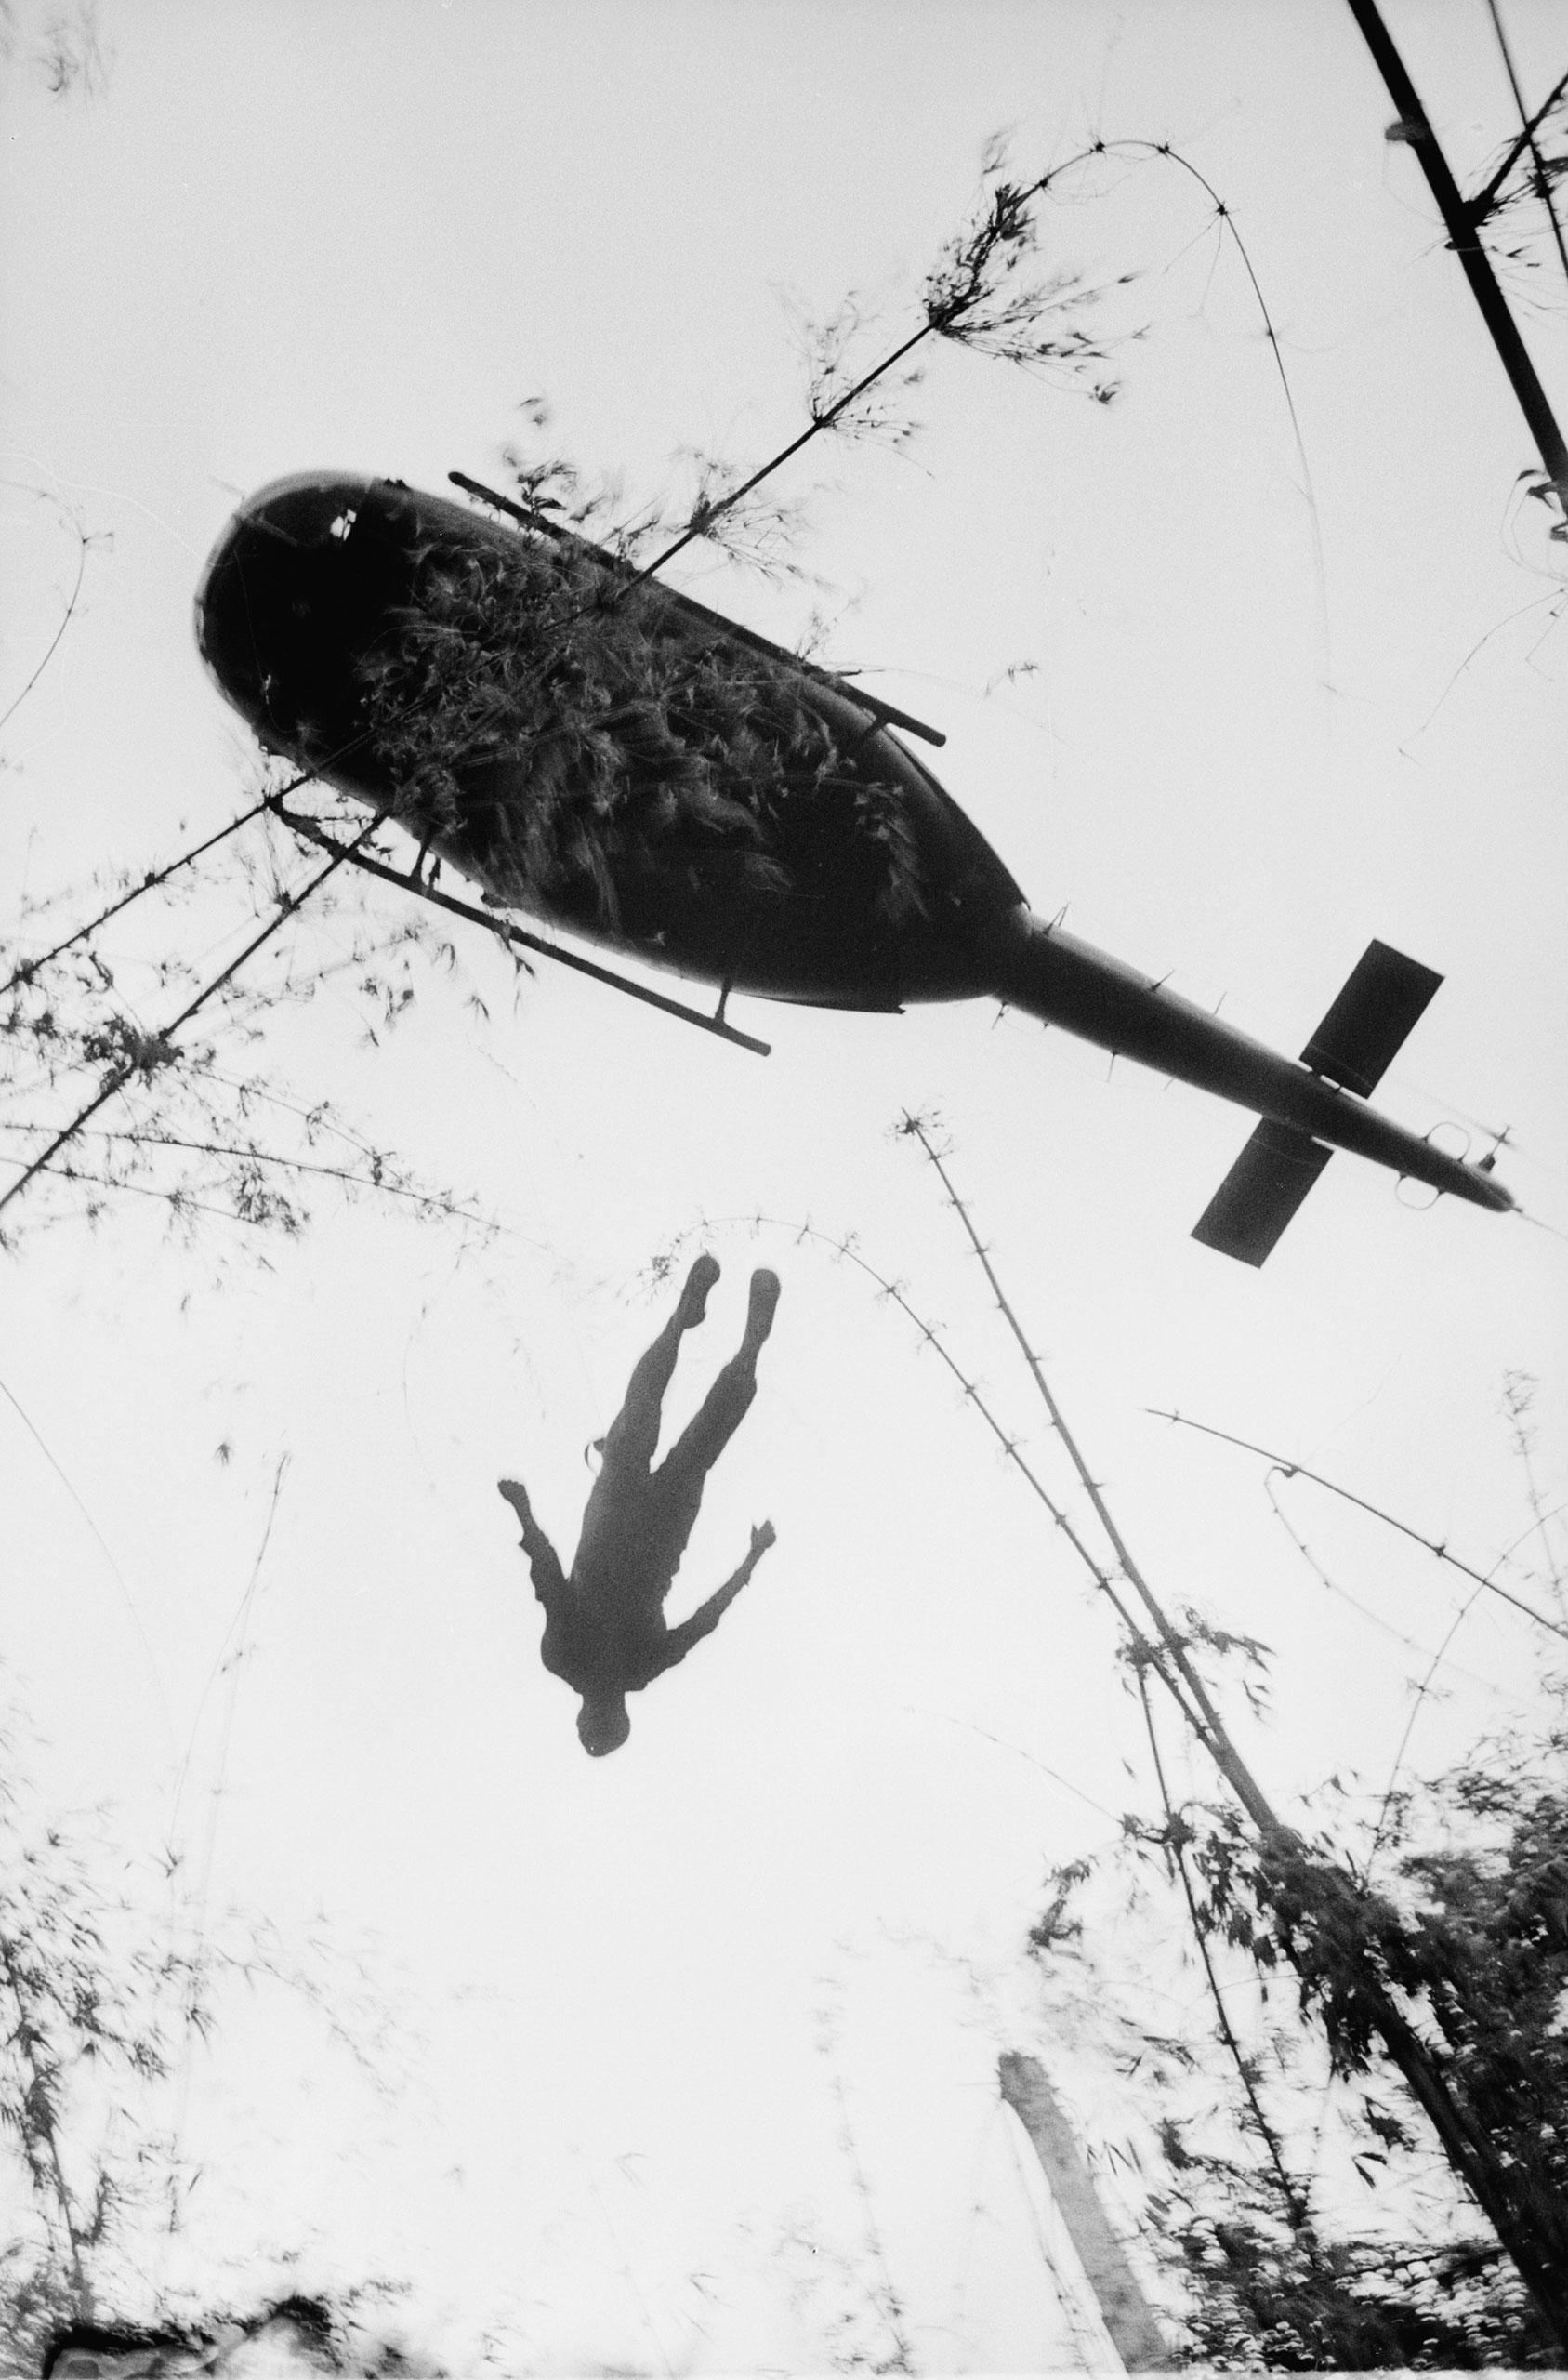 The body of an American paratrooper killed in action in the jungle near the Cambodian border is raised up to an evacuation helicopter in War Zone C in Vietnam on May 14, 1966.